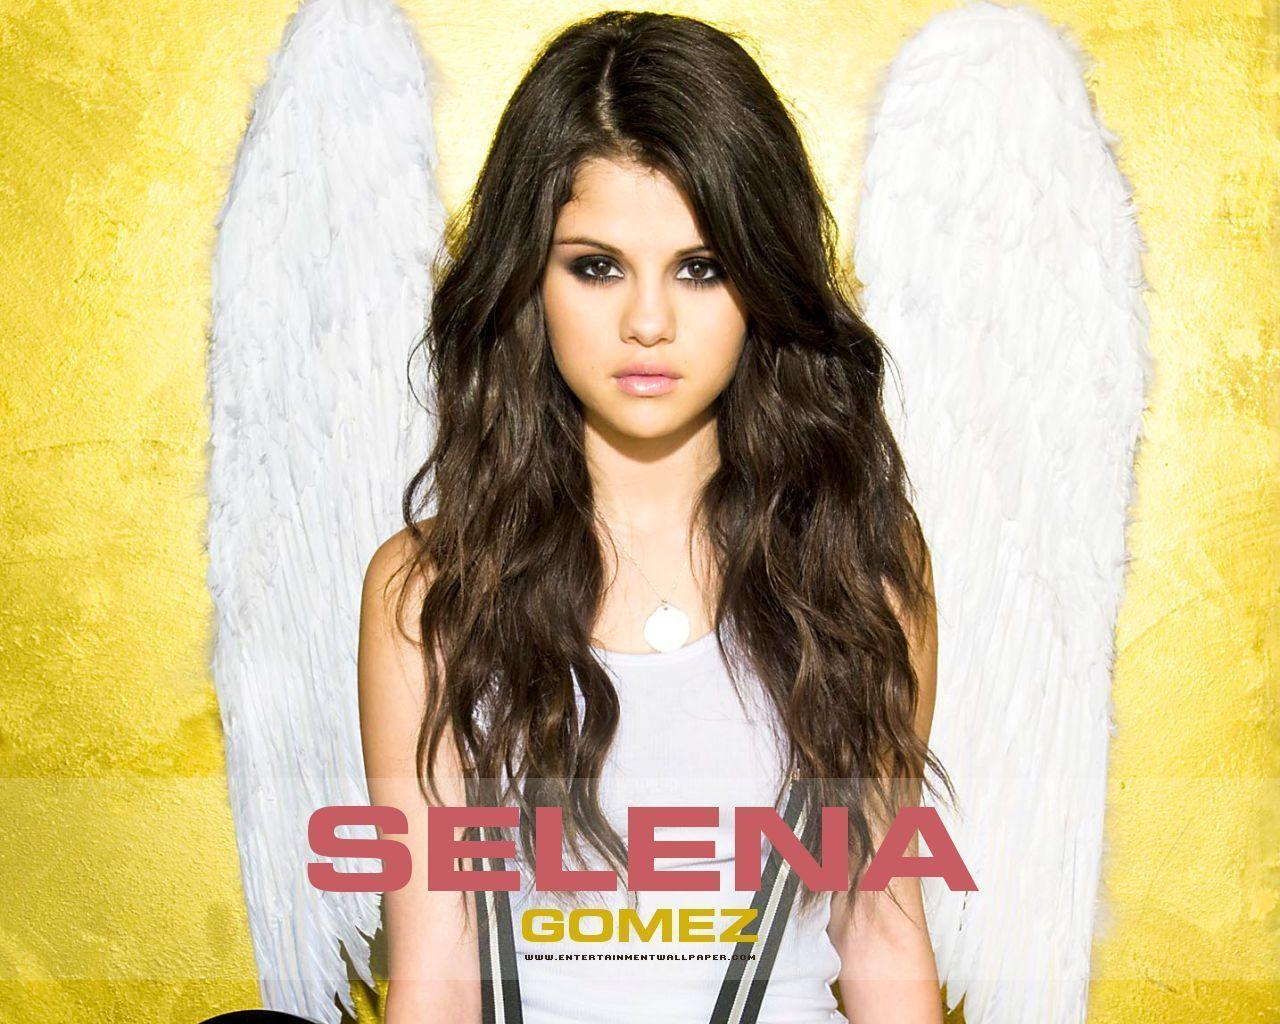 Selena Gomez Wallpaper 4 225953 Images HD Wallpapers| Wallfoy.